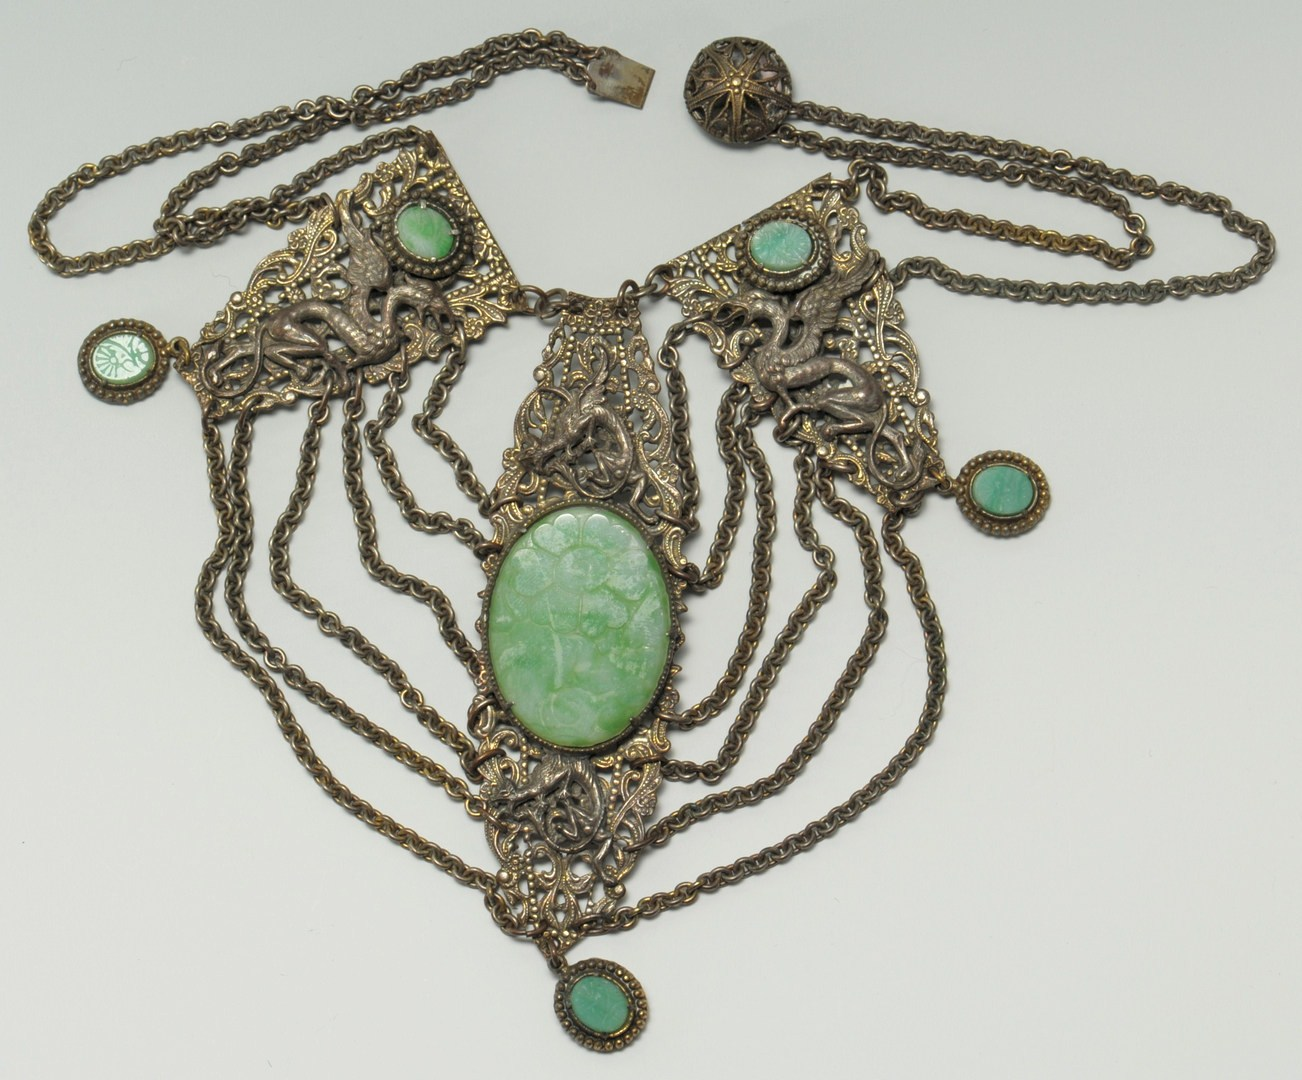 Lot 214: Chinese Jade Dragon Necklace and Cloisonne Brooch